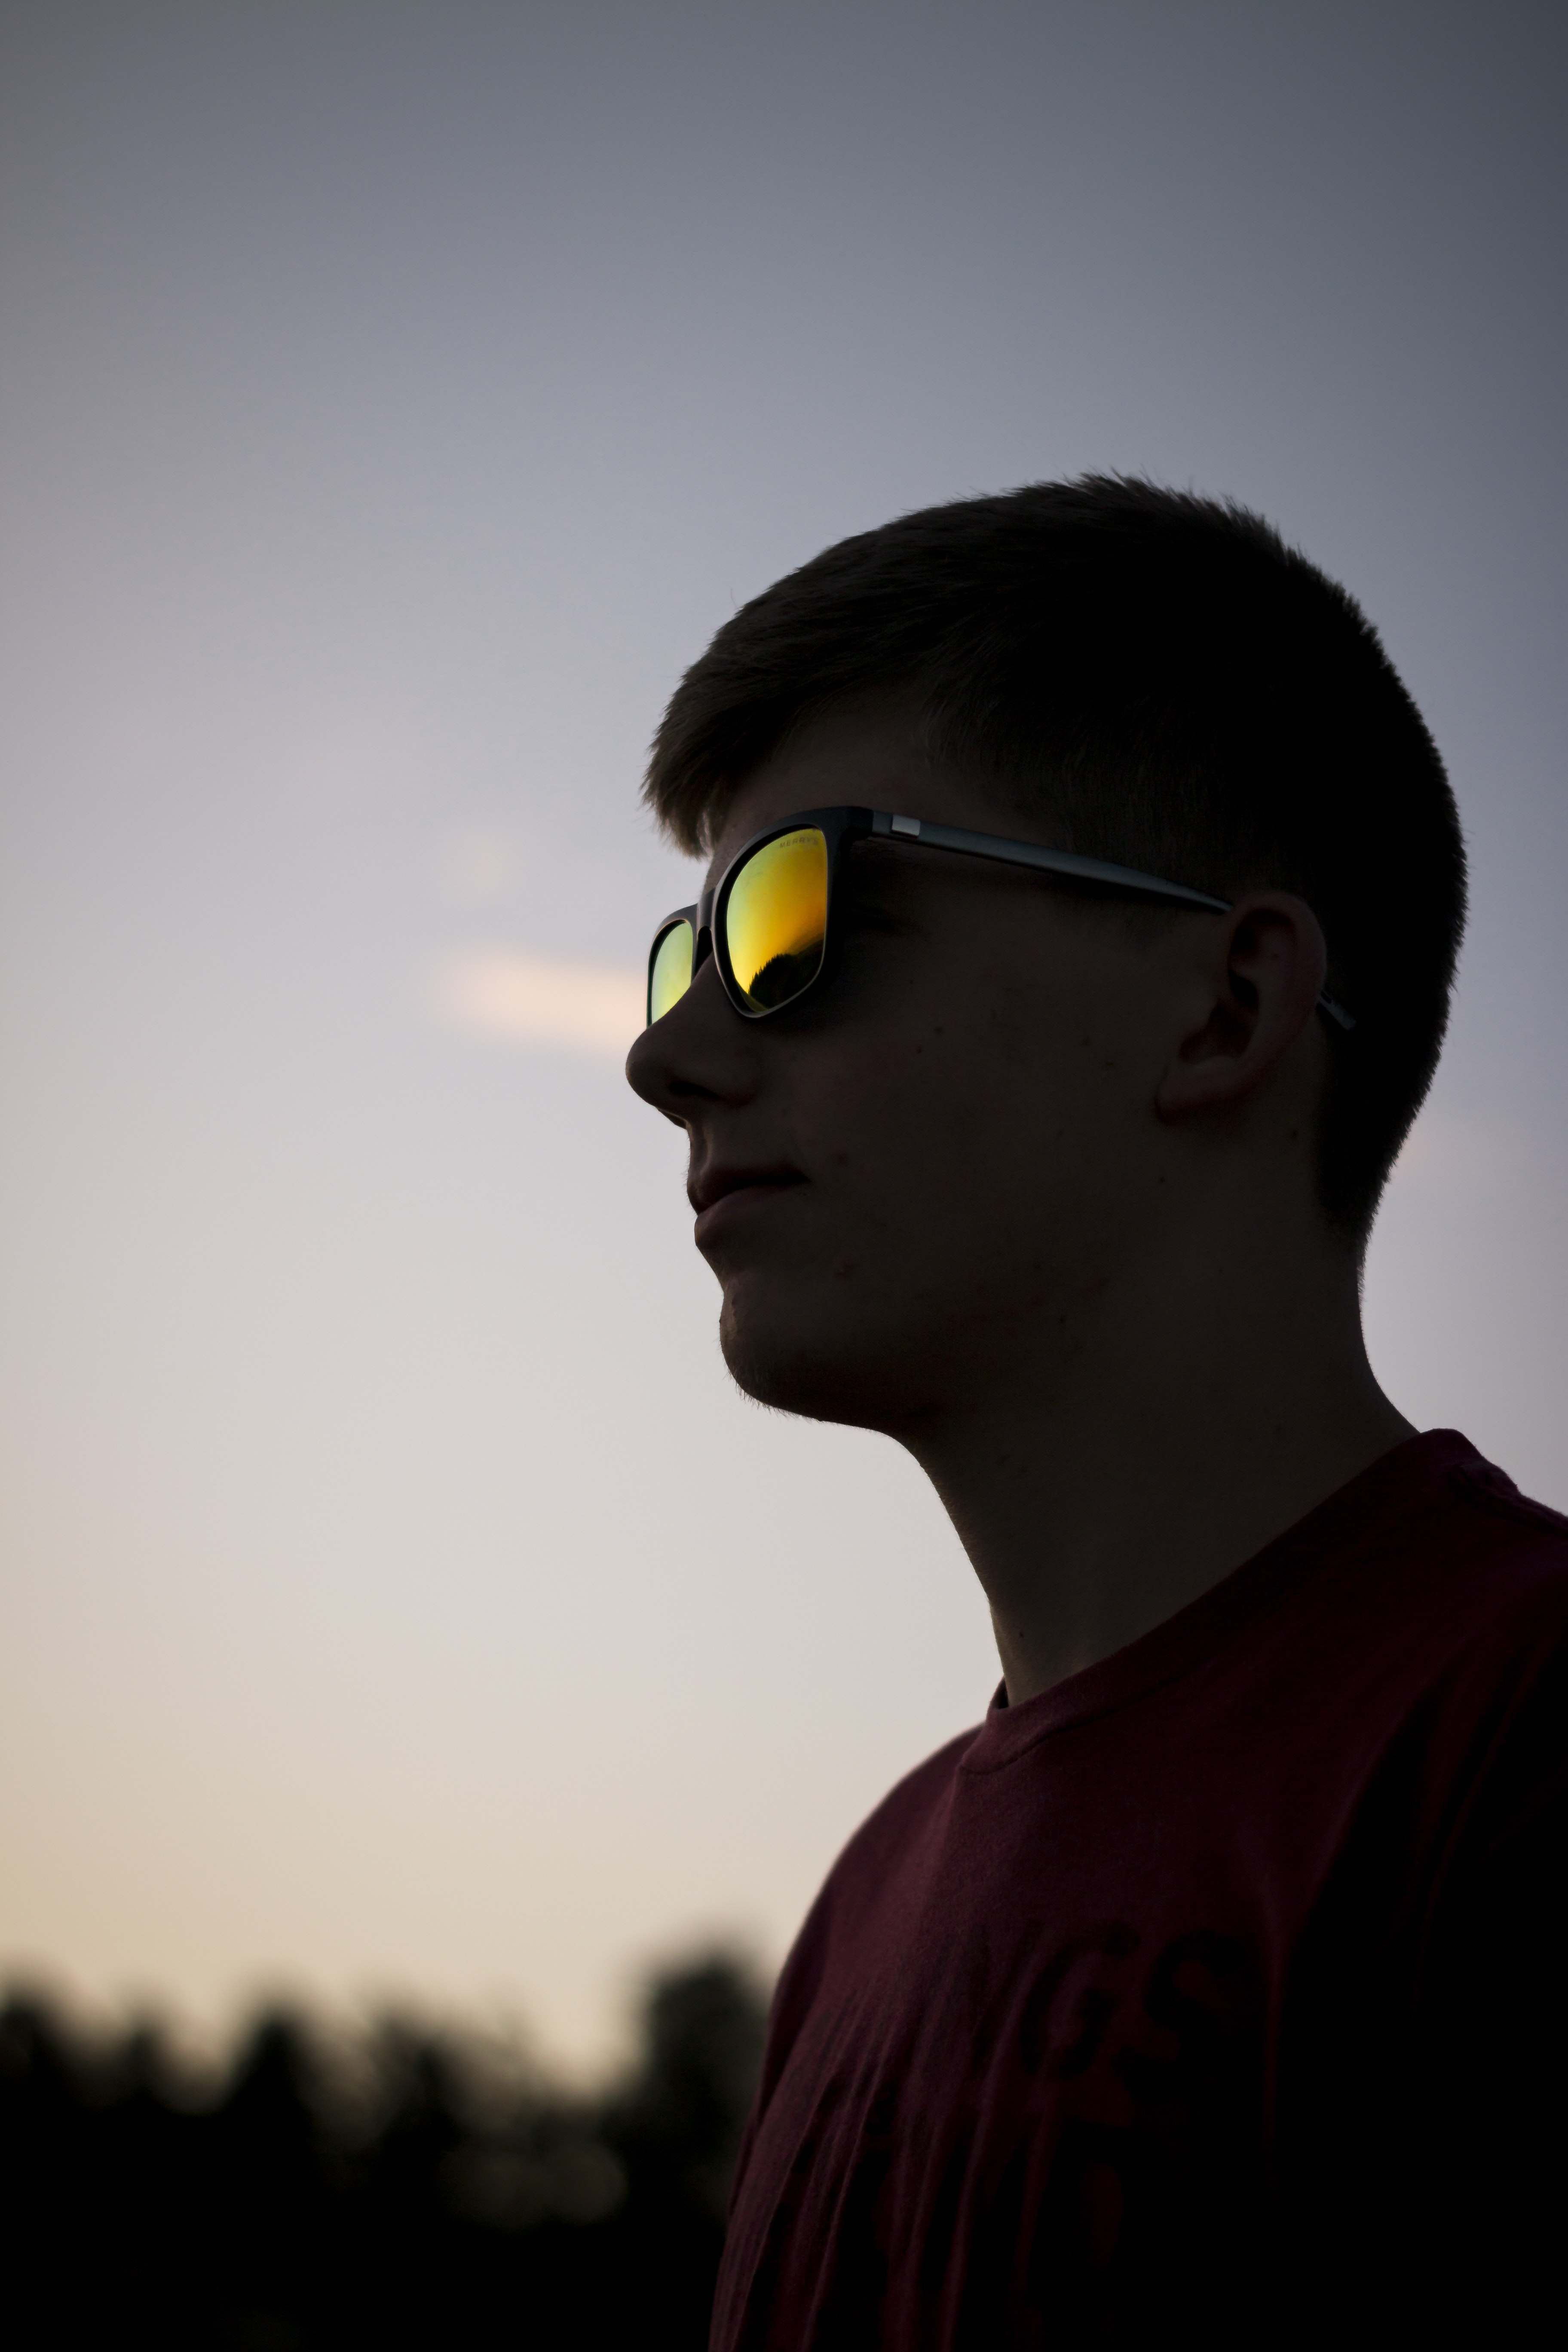 shallow focus photography of man wearing sunglasses